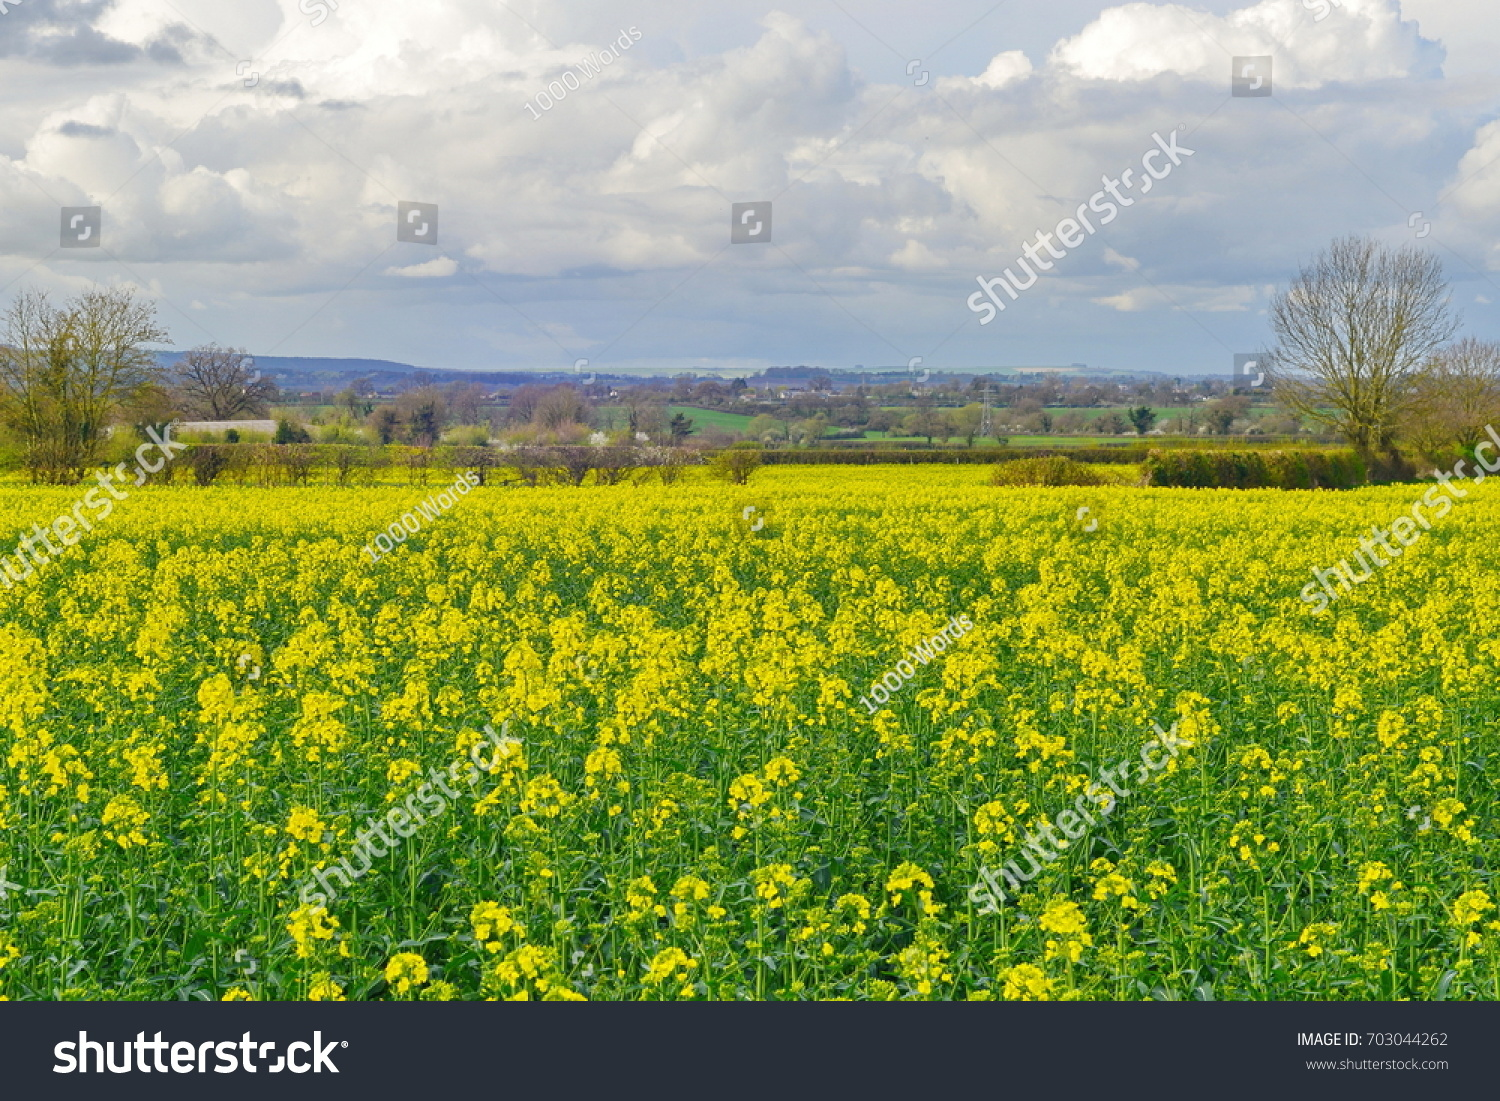 Scenic view yellow flower crops farmland stock photo royalty free scenic view of yellow flower crops in a farmland field mightylinksfo